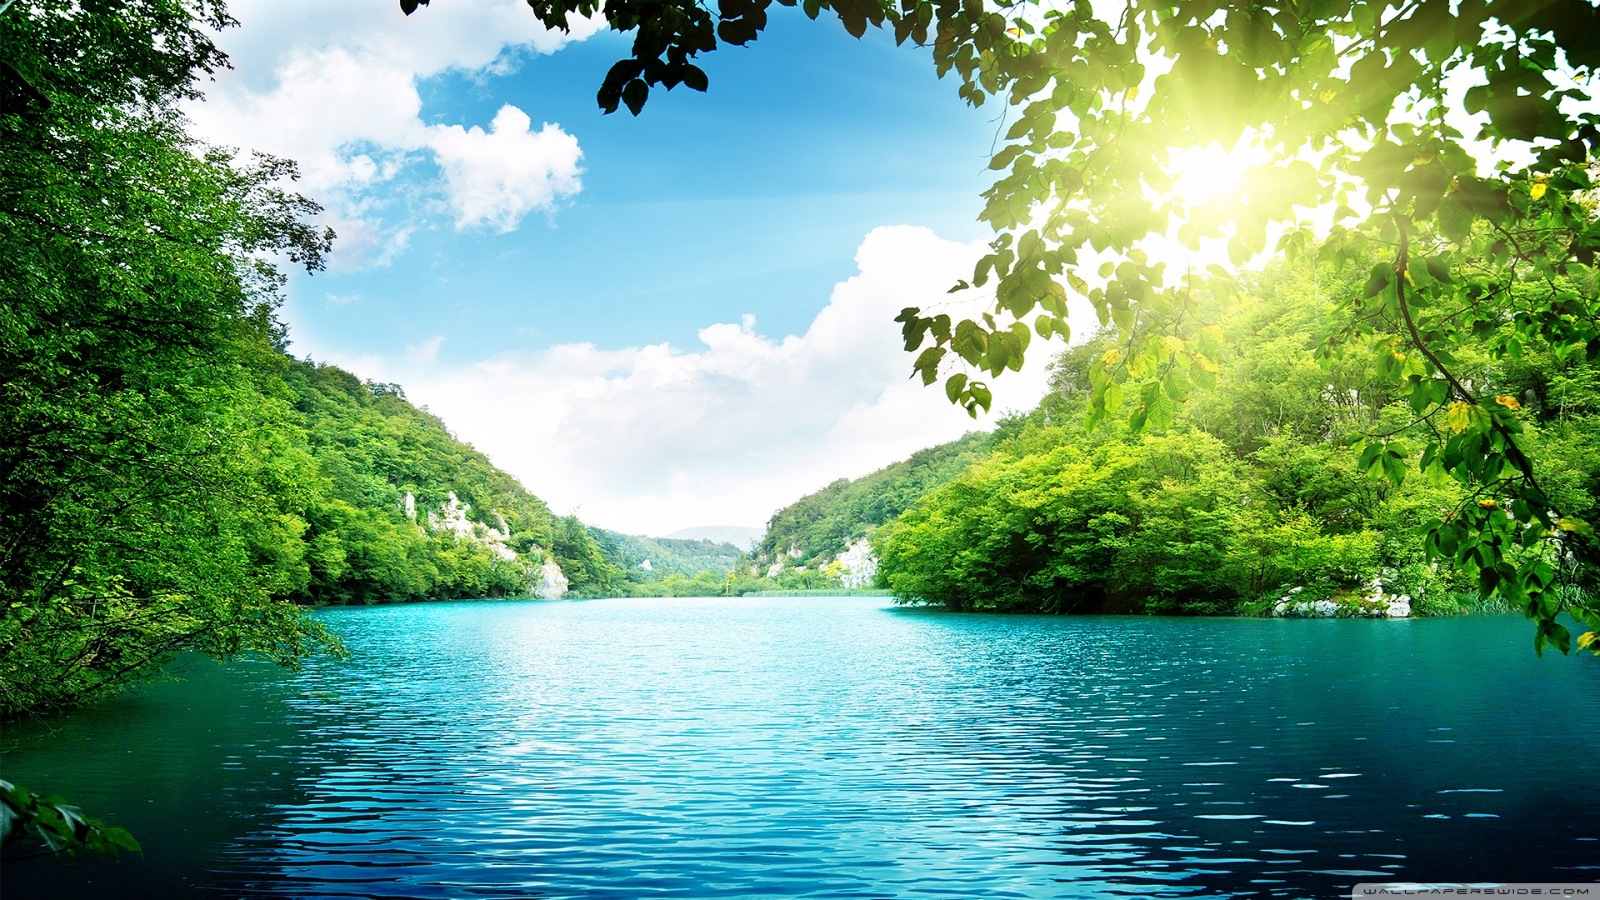 Peaceful Desktop Backgrounds   HD Wallpapers and Pictures 1600x900